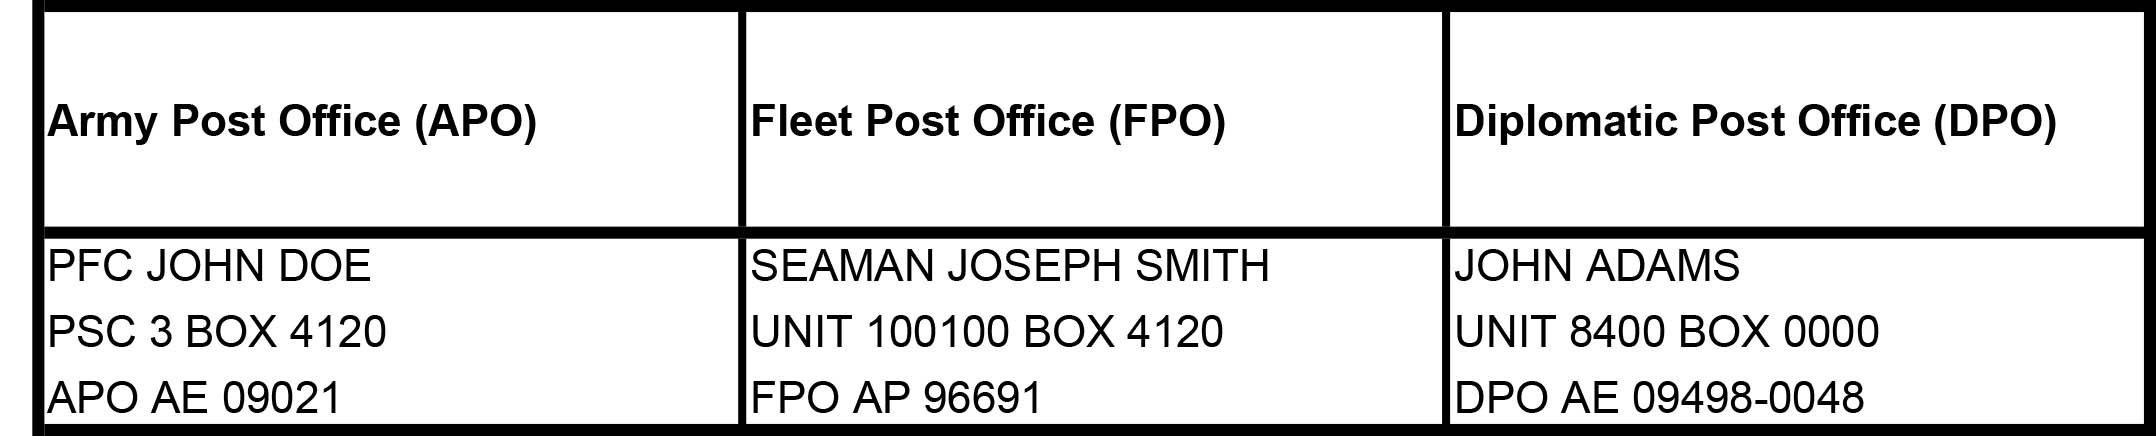 APO Shipping Address.jpg